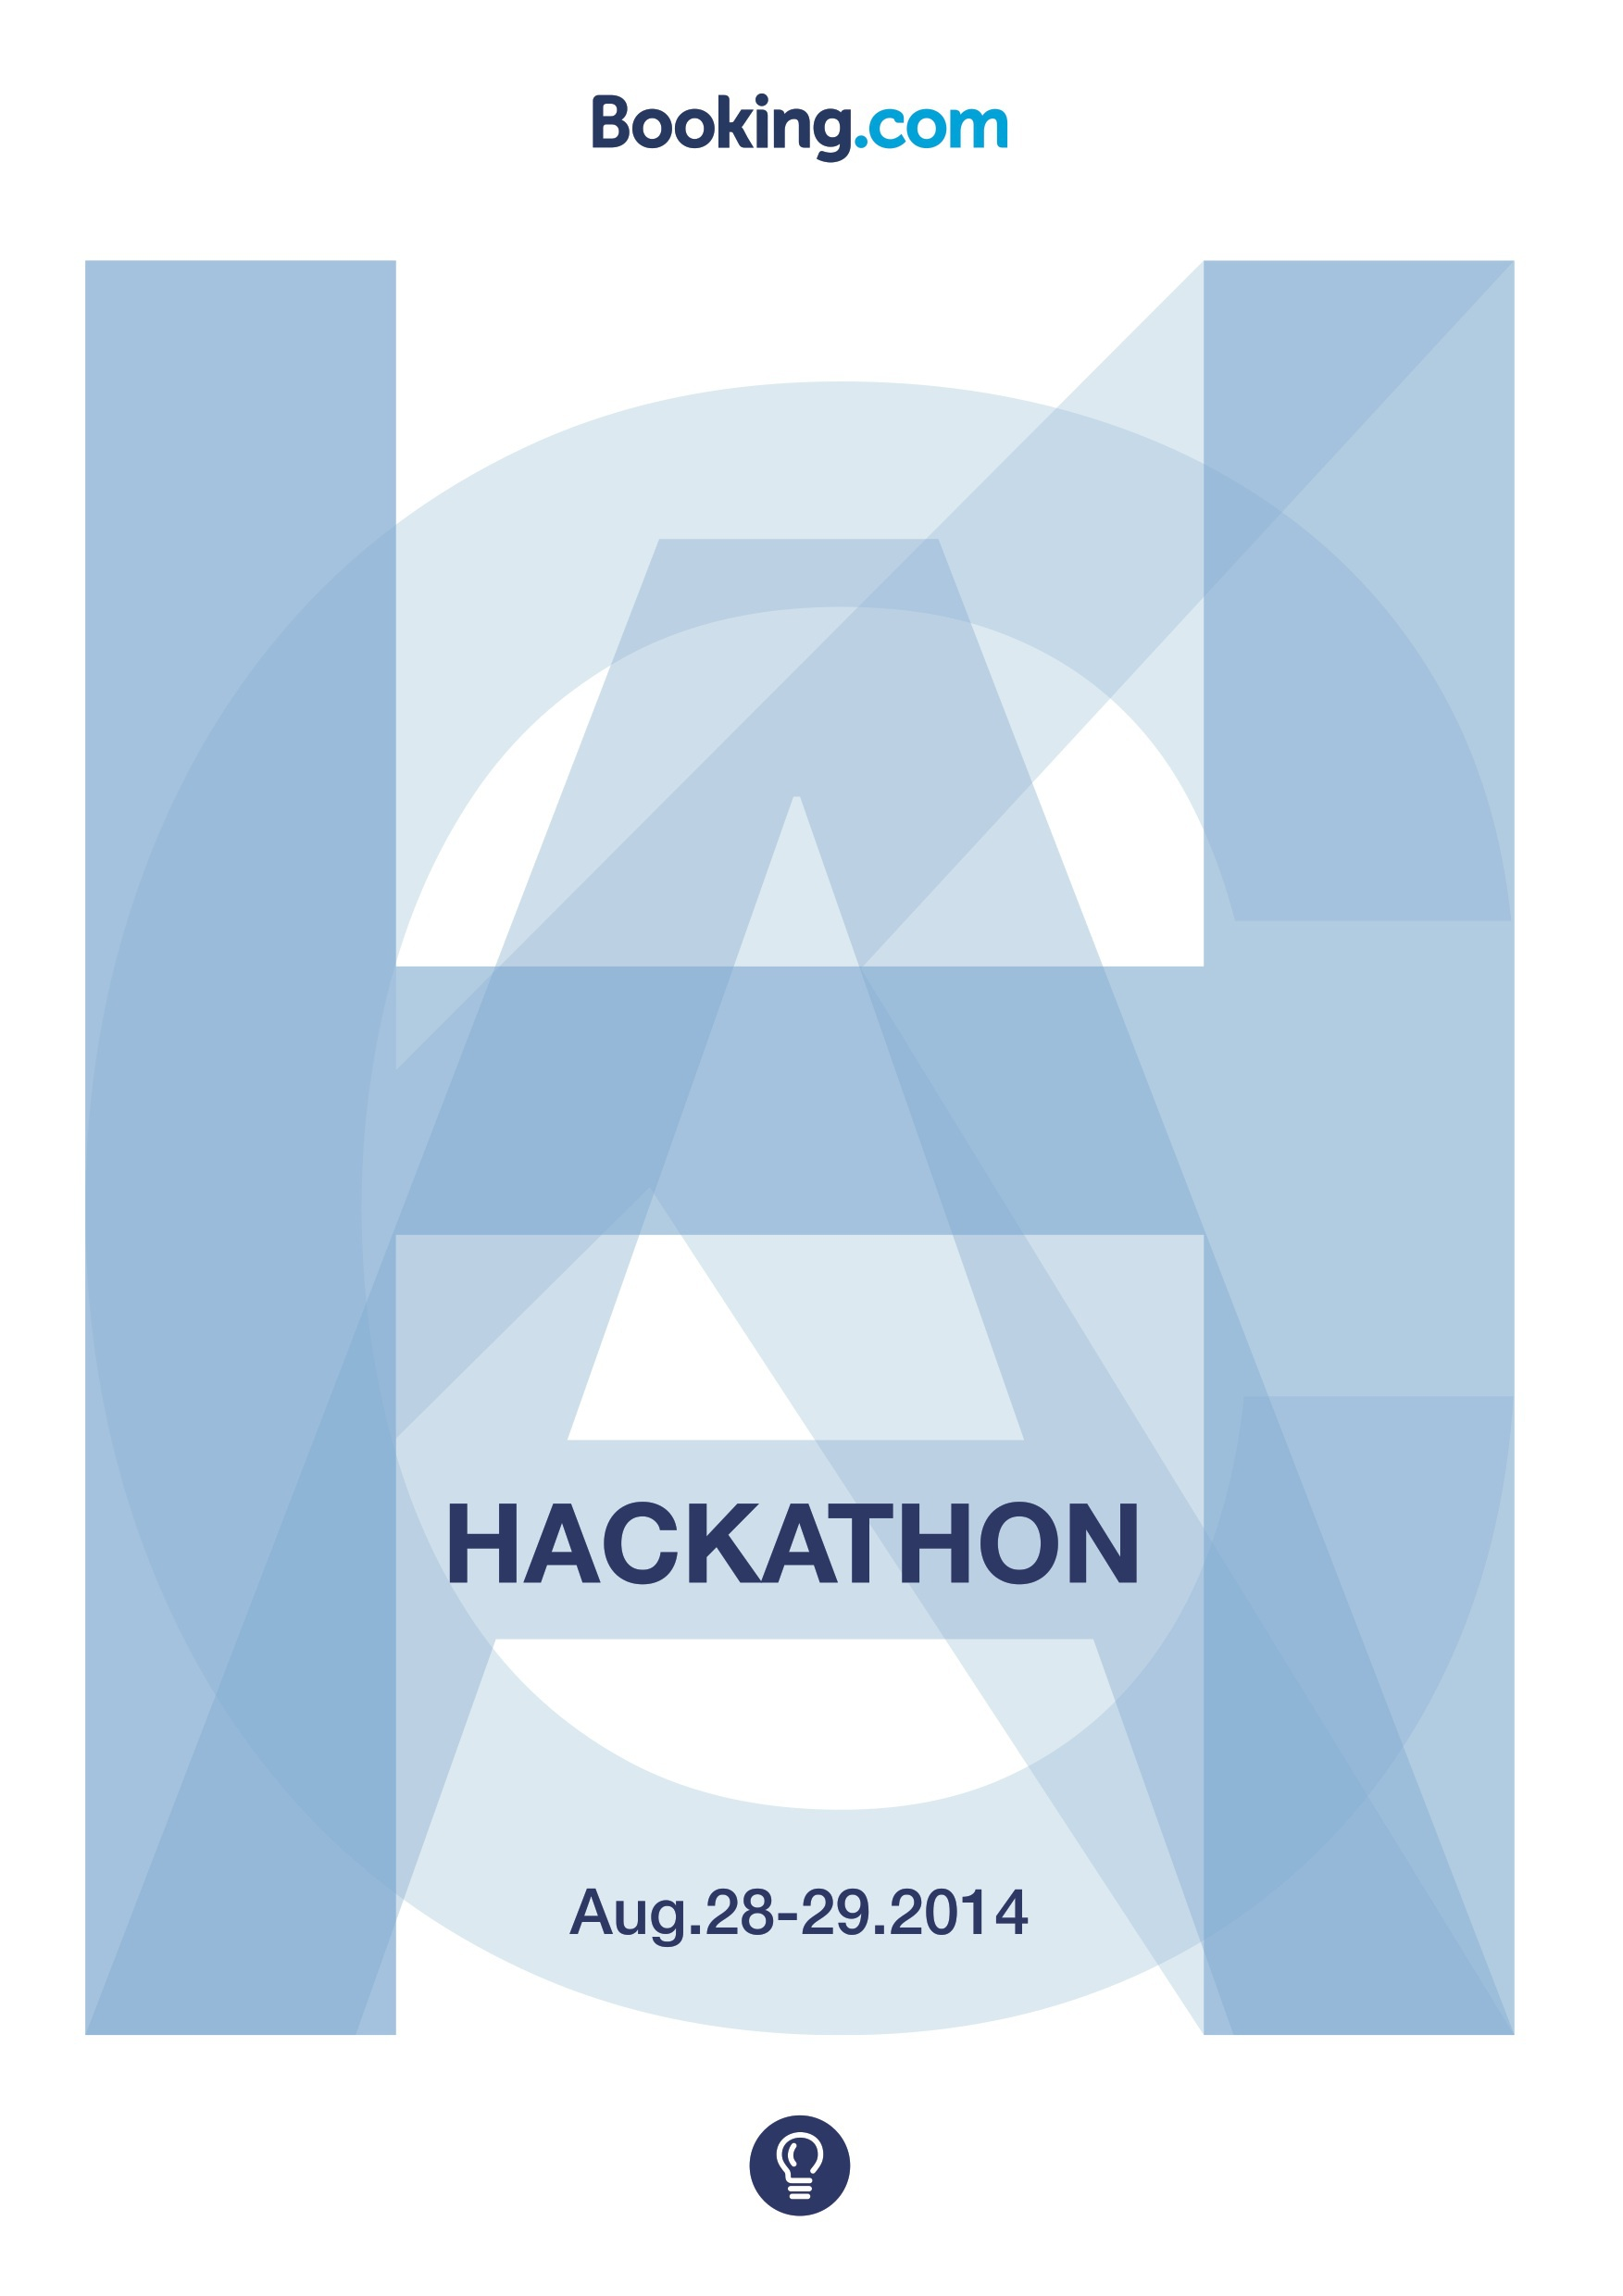 August hackathon margin